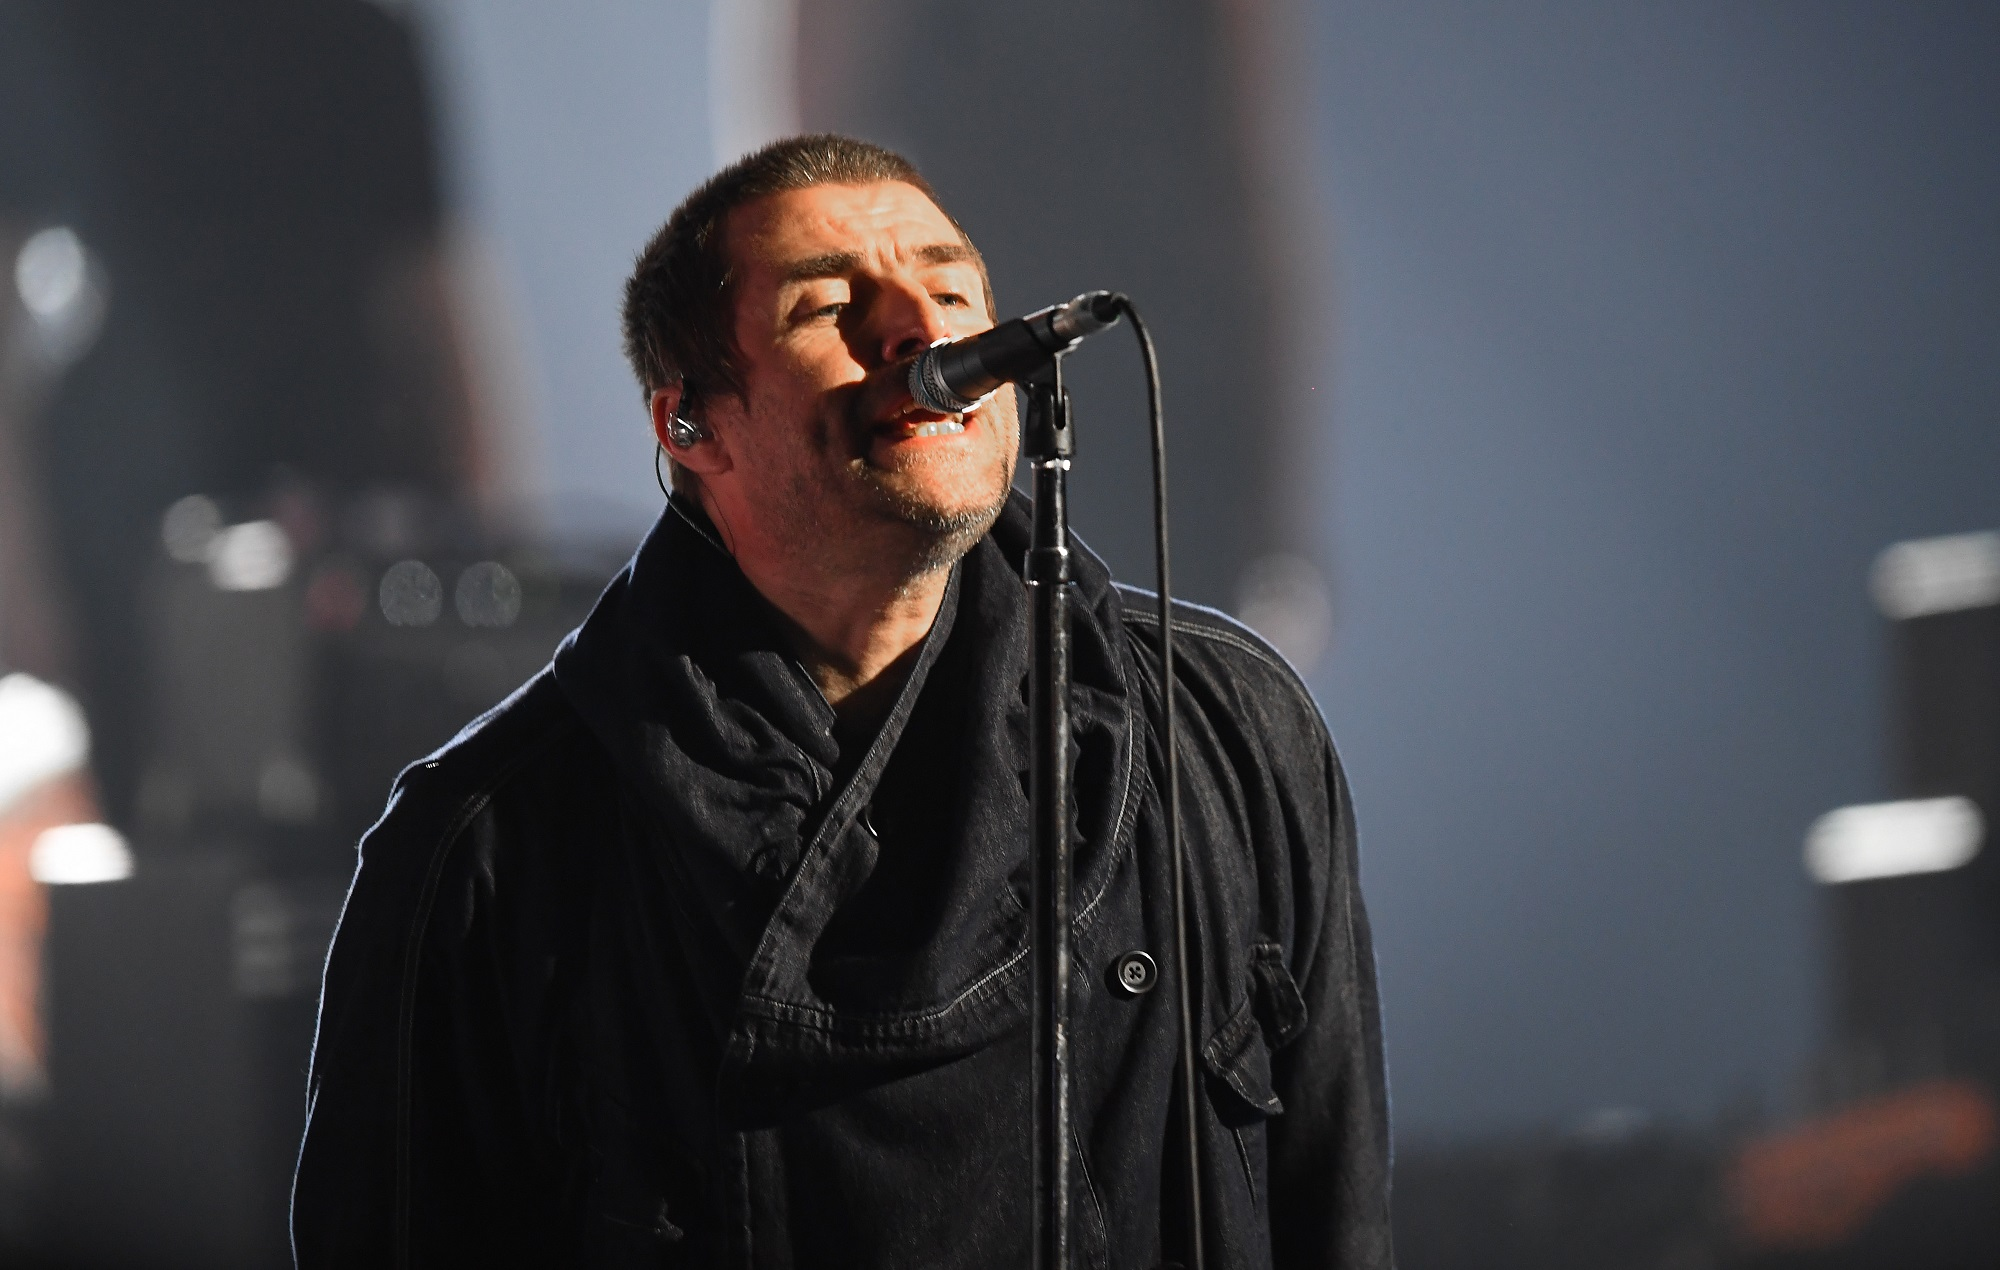 Liam Gallagher is encouraging people to part with their parkas for the homeless